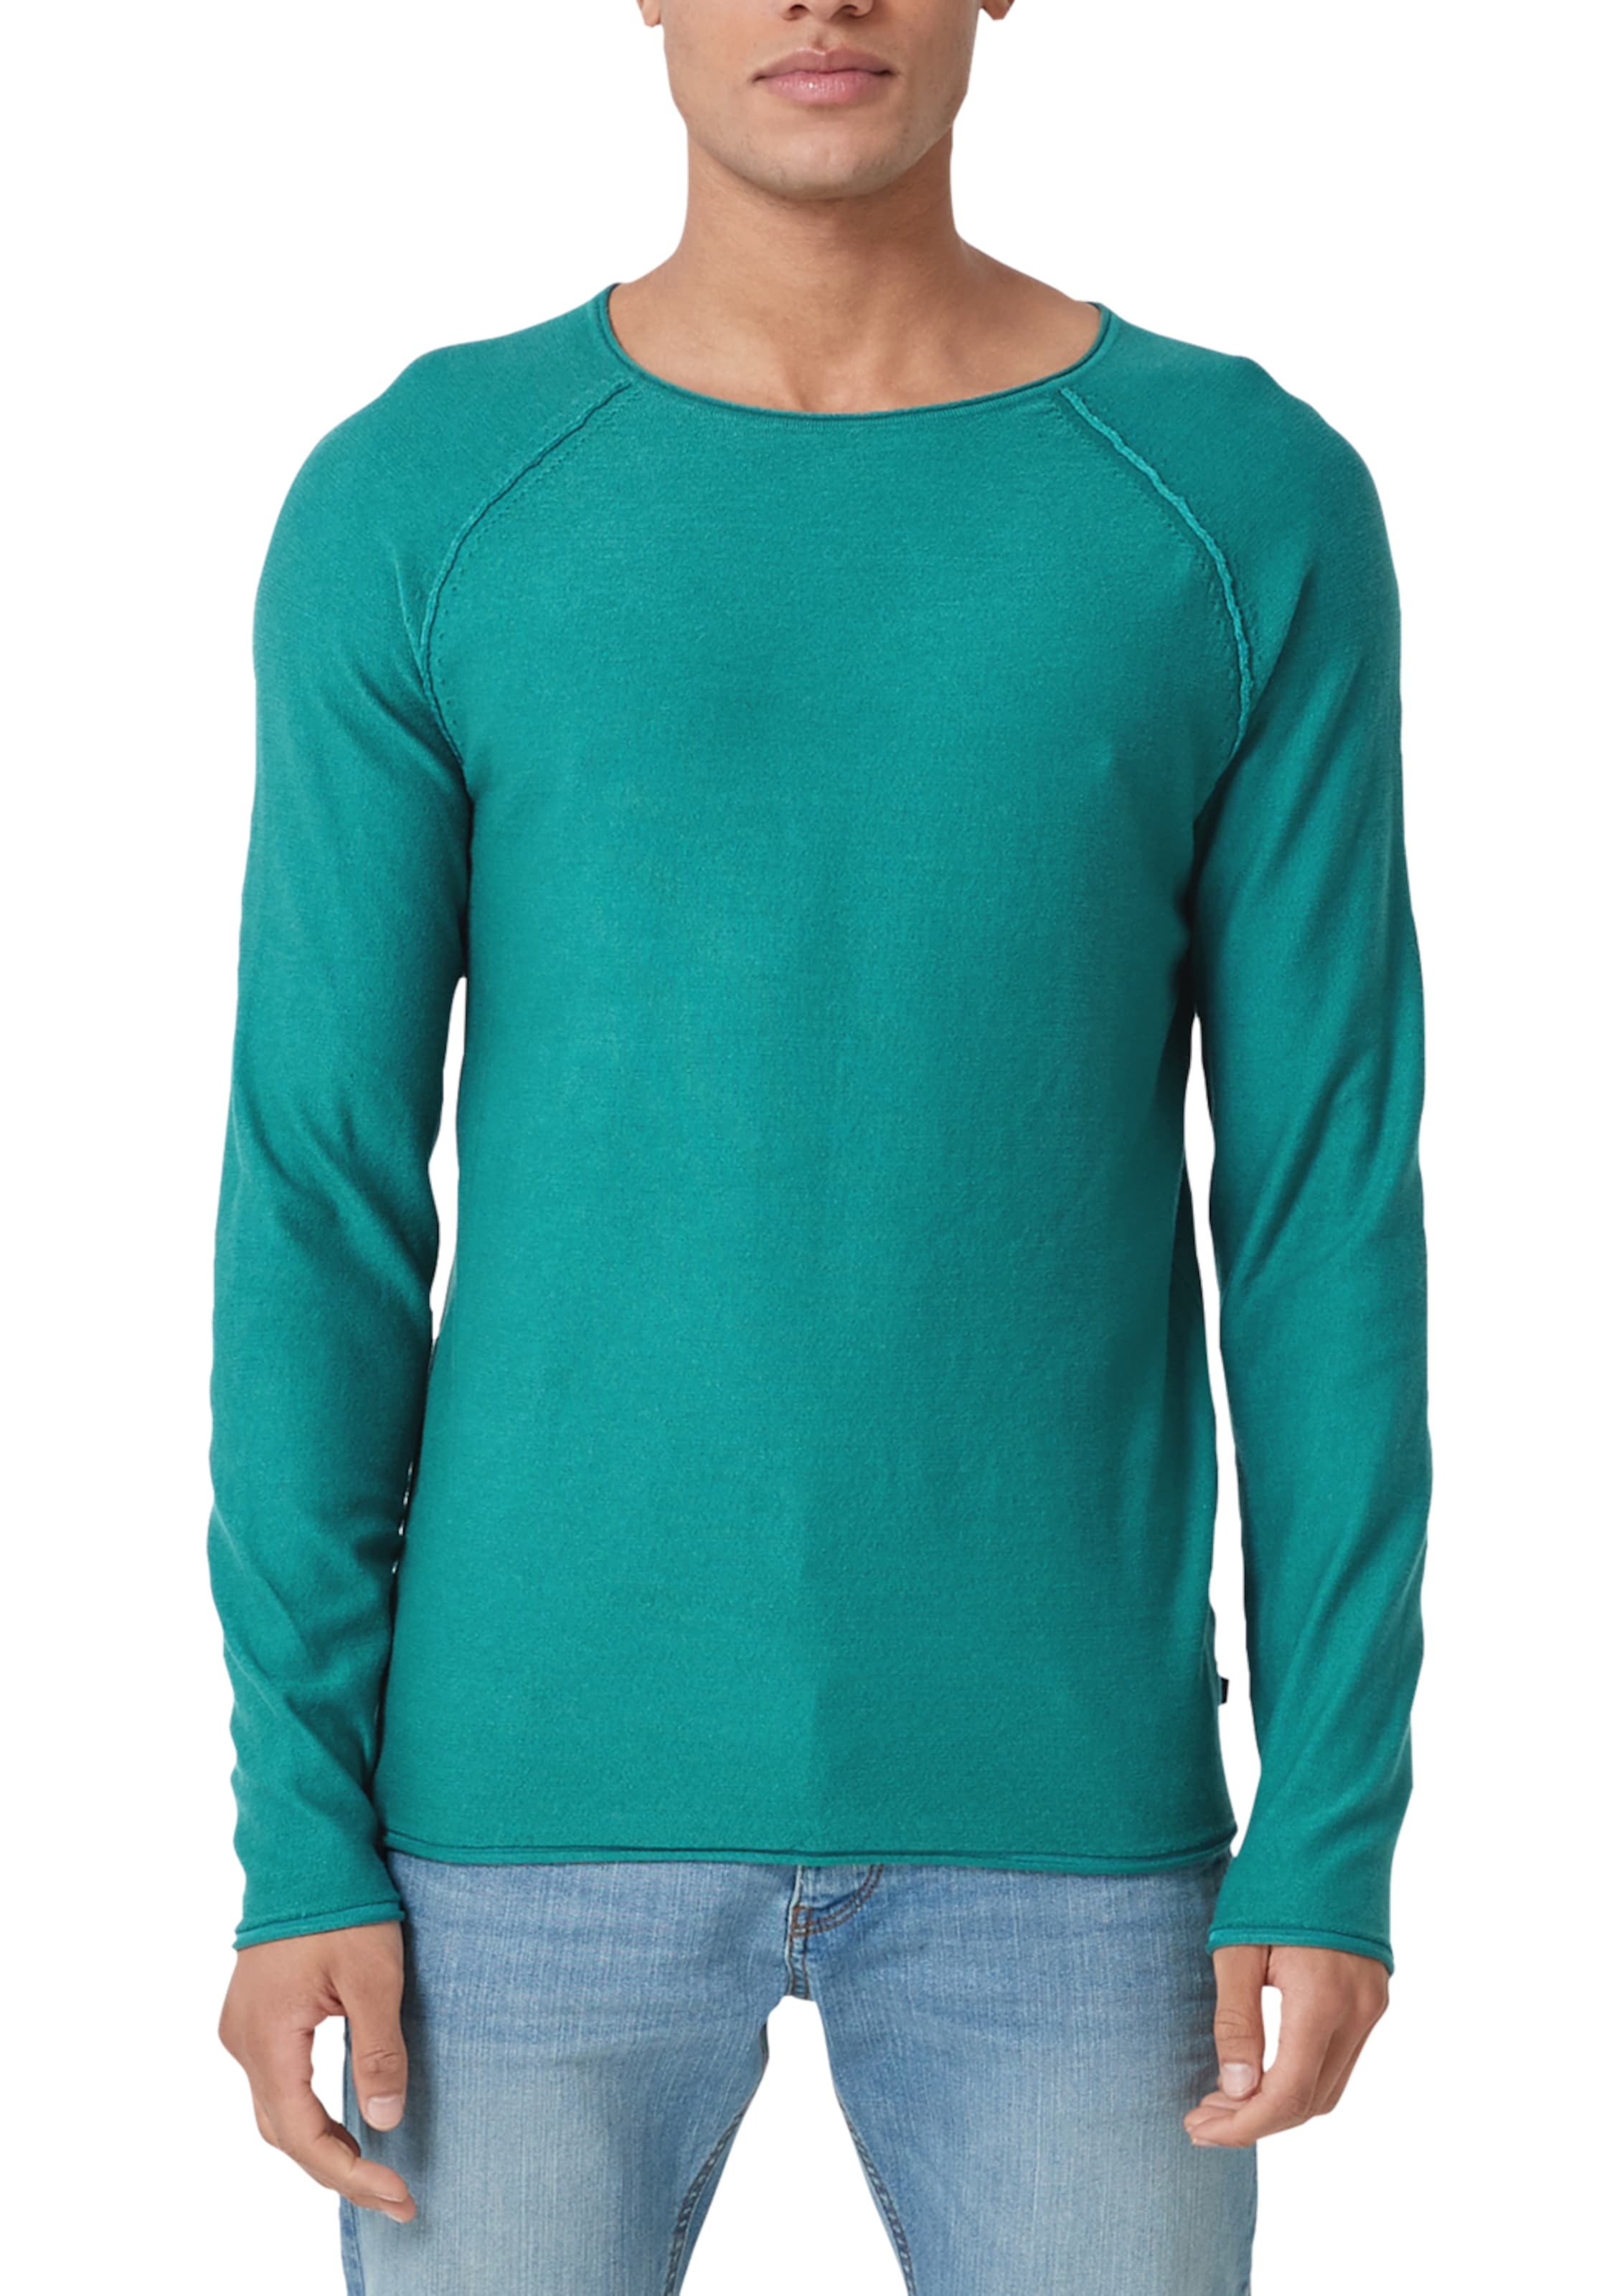 Designed In Jade By Q Pullover s BoxsdCtQhr